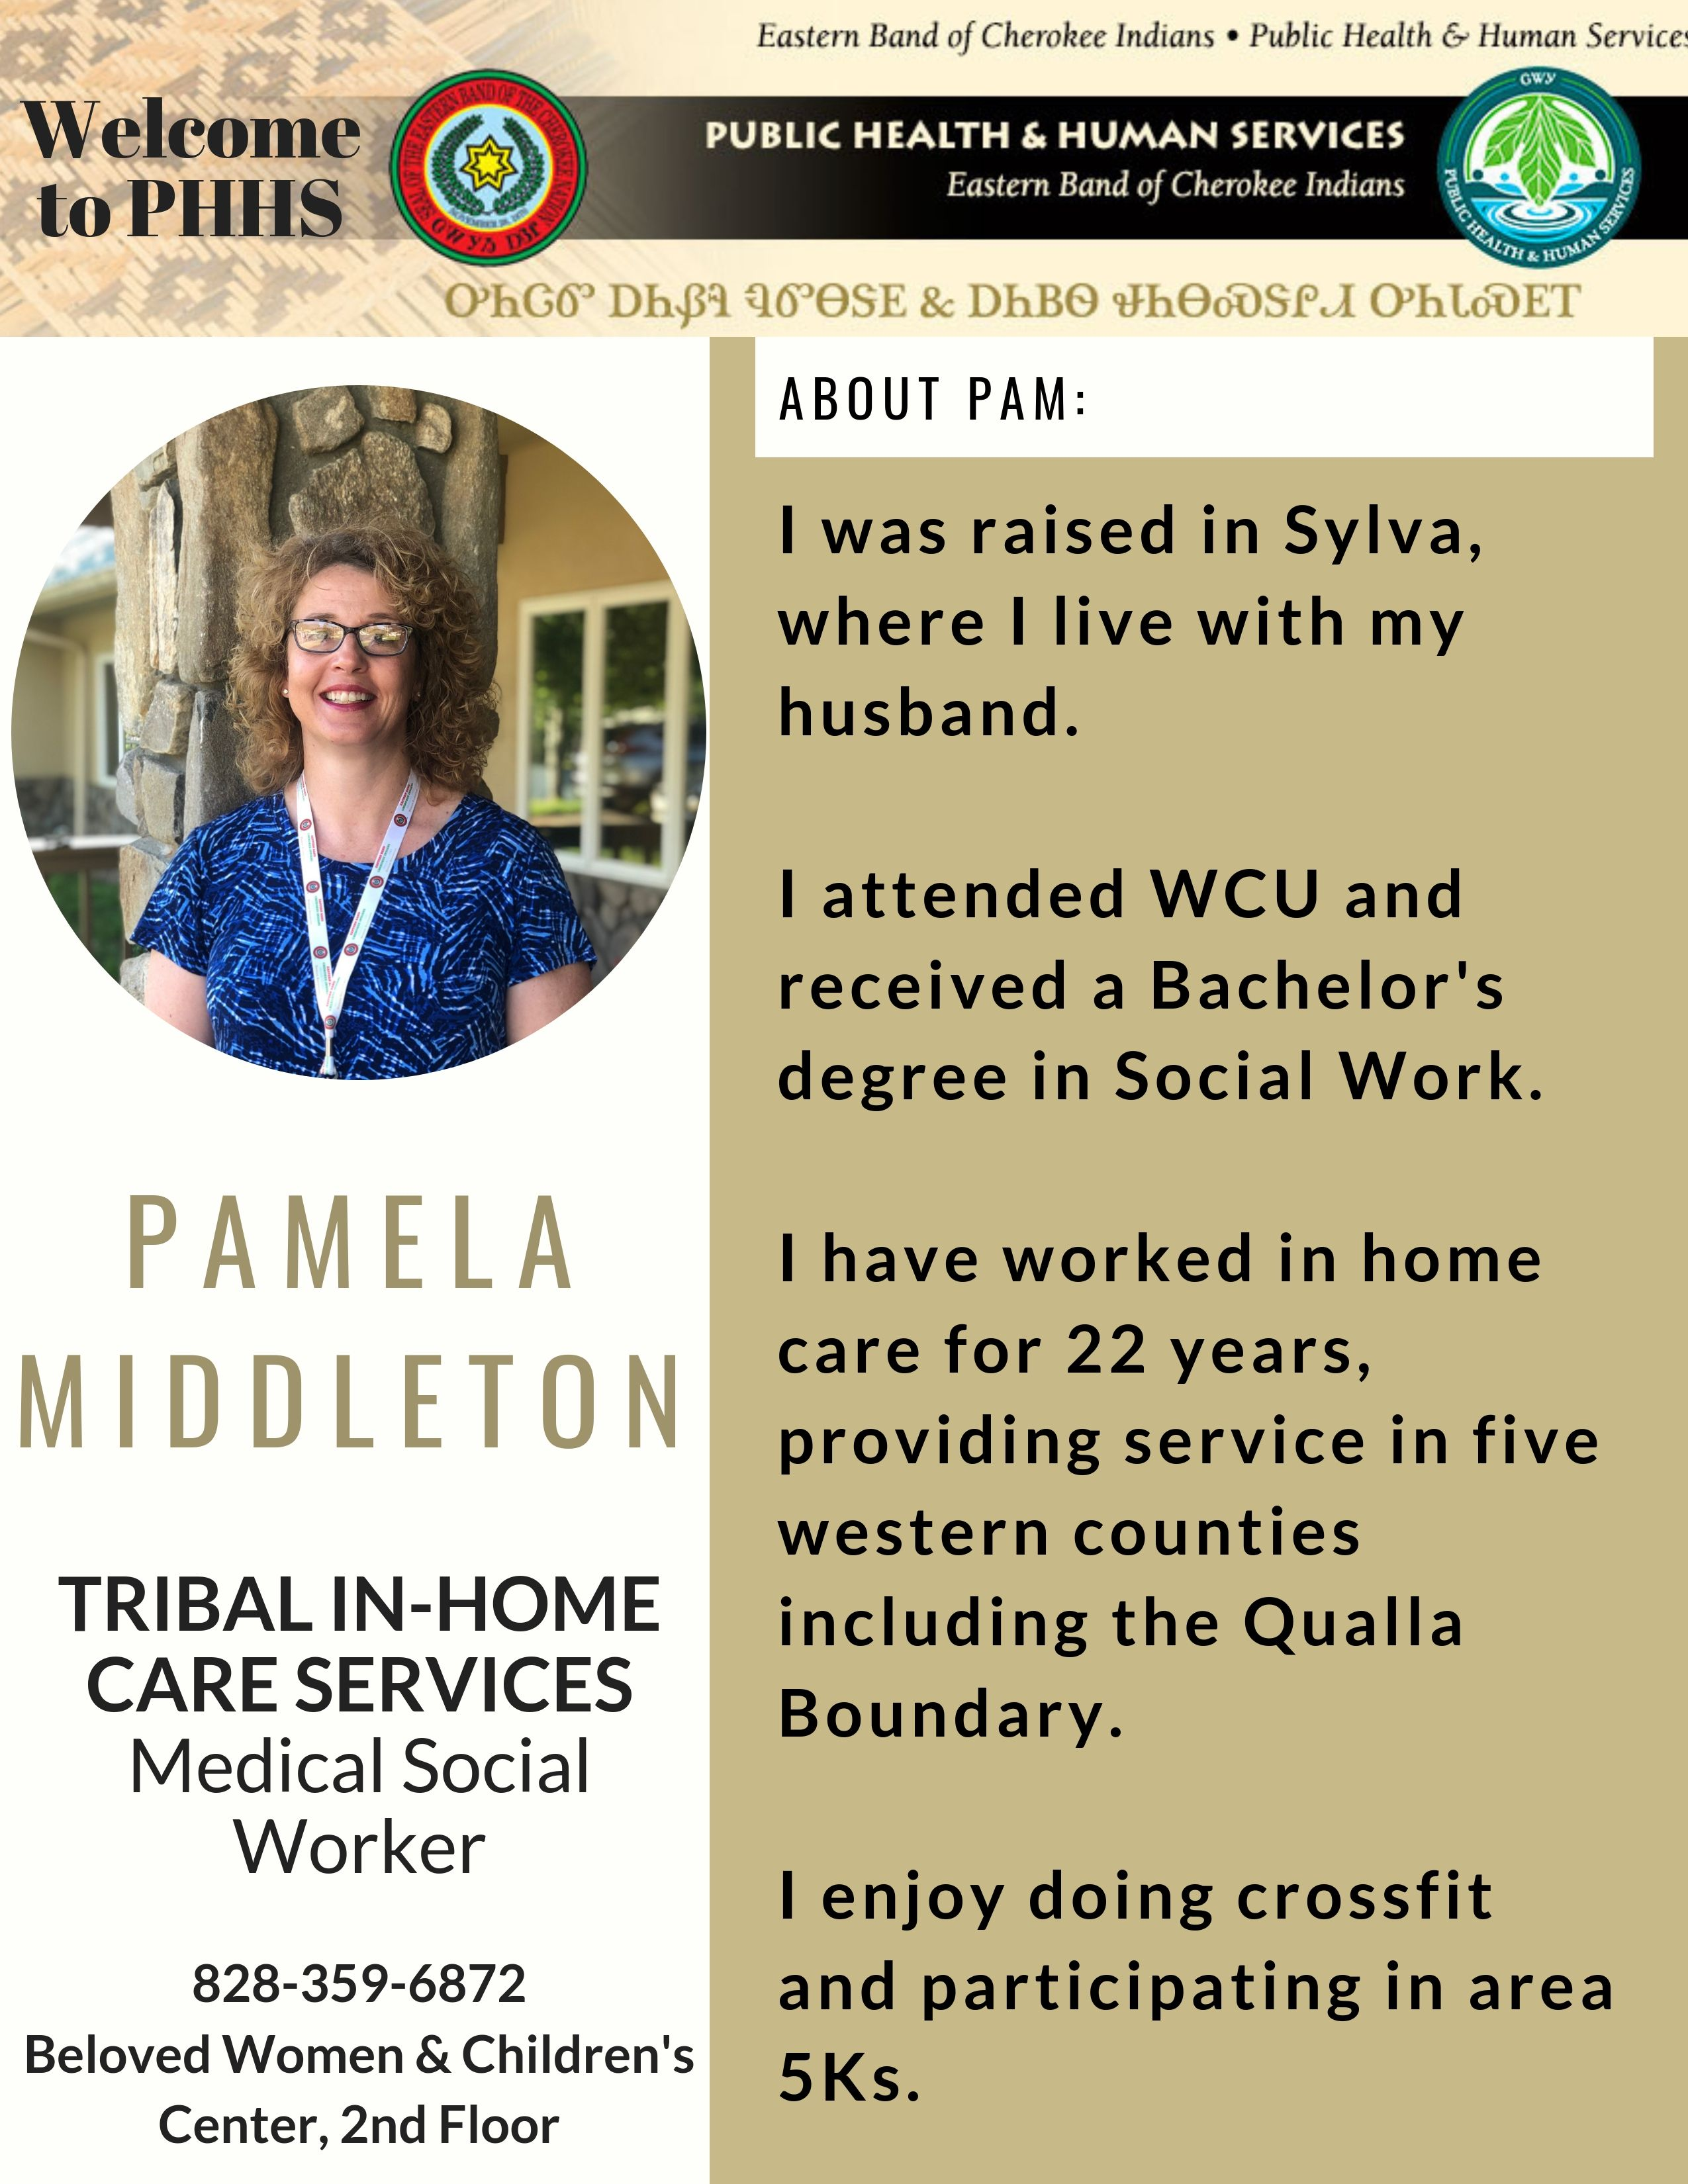 Please Join Us In Welcoming Pam Middleton To The Phhs Team As The Medical Social Worker For Tribal In Home C Medical Social Worker Human Services Public Health